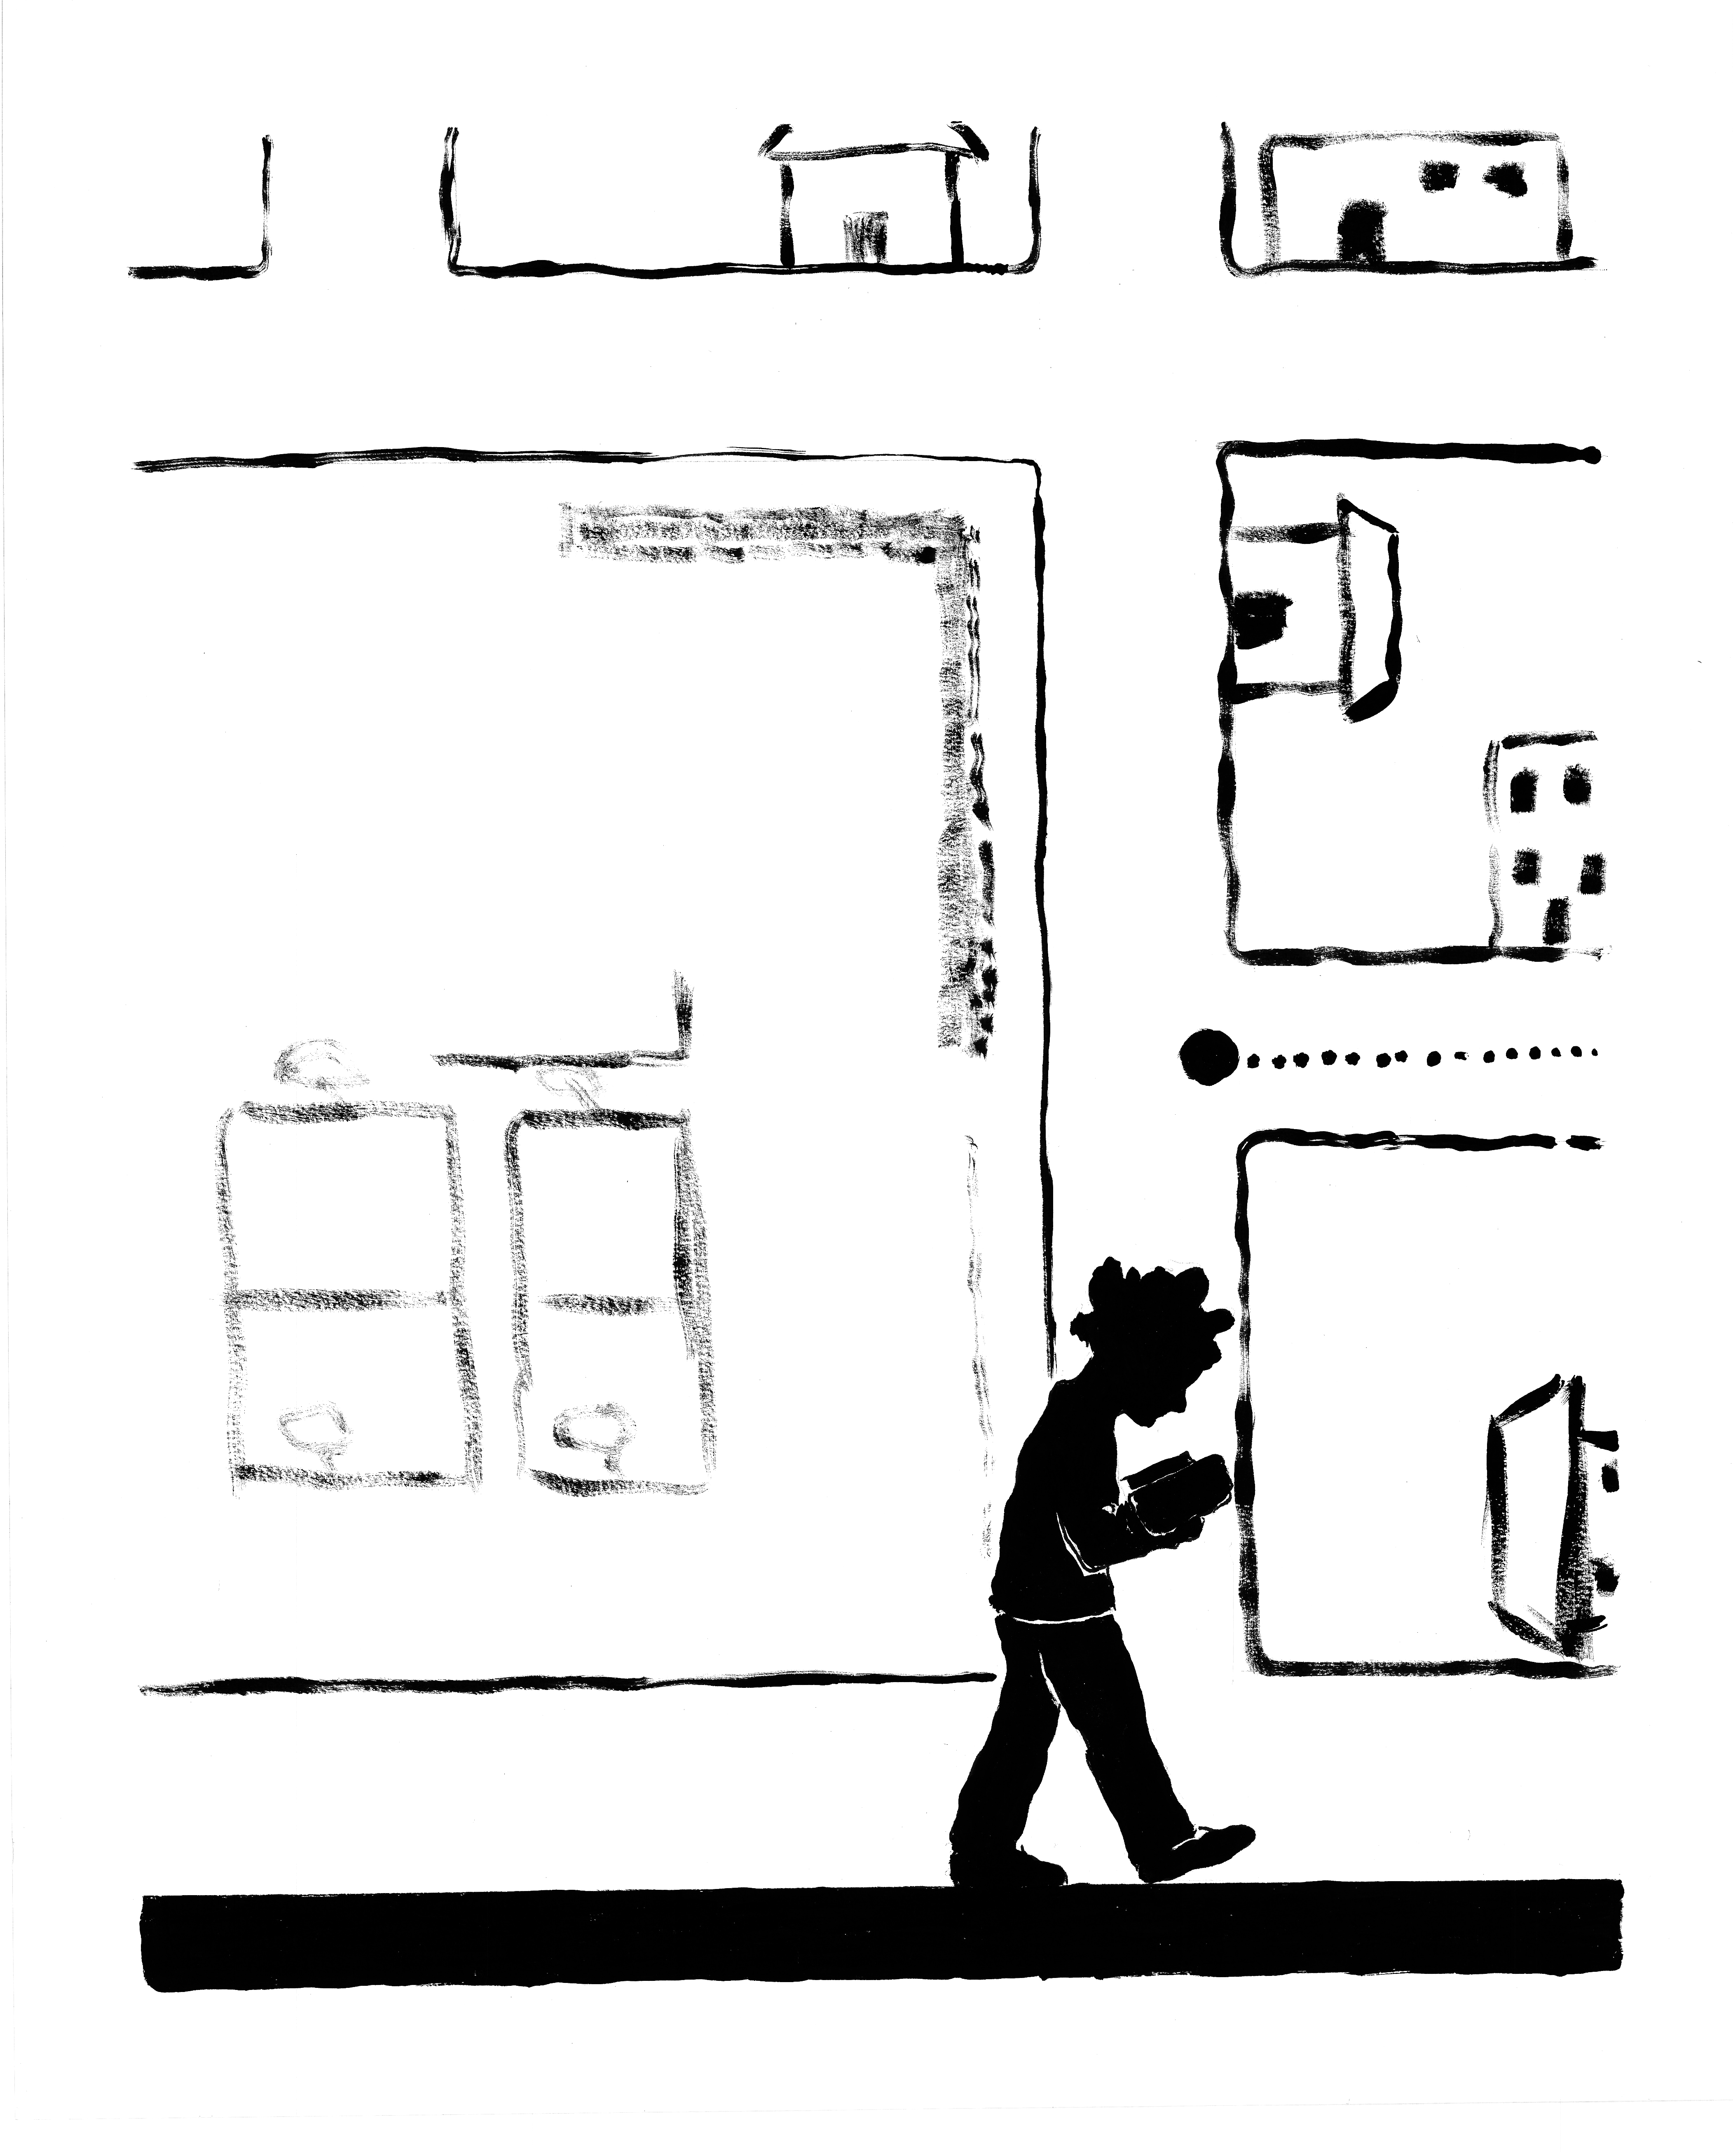 The image is a whole page from the book. Toward the bottom of the page, a young boy in silhouette walks in profile while looking down at his open book; a bold black line runs across the bottom of the page under his feet. The background or superimposition is a child's (his) drawing of a map in aerial view, showing streets, basketball courts, and buildings (drawn straight-on, not aerial), as well as a dotted line along a street that leads to a larger dot at an intersection.